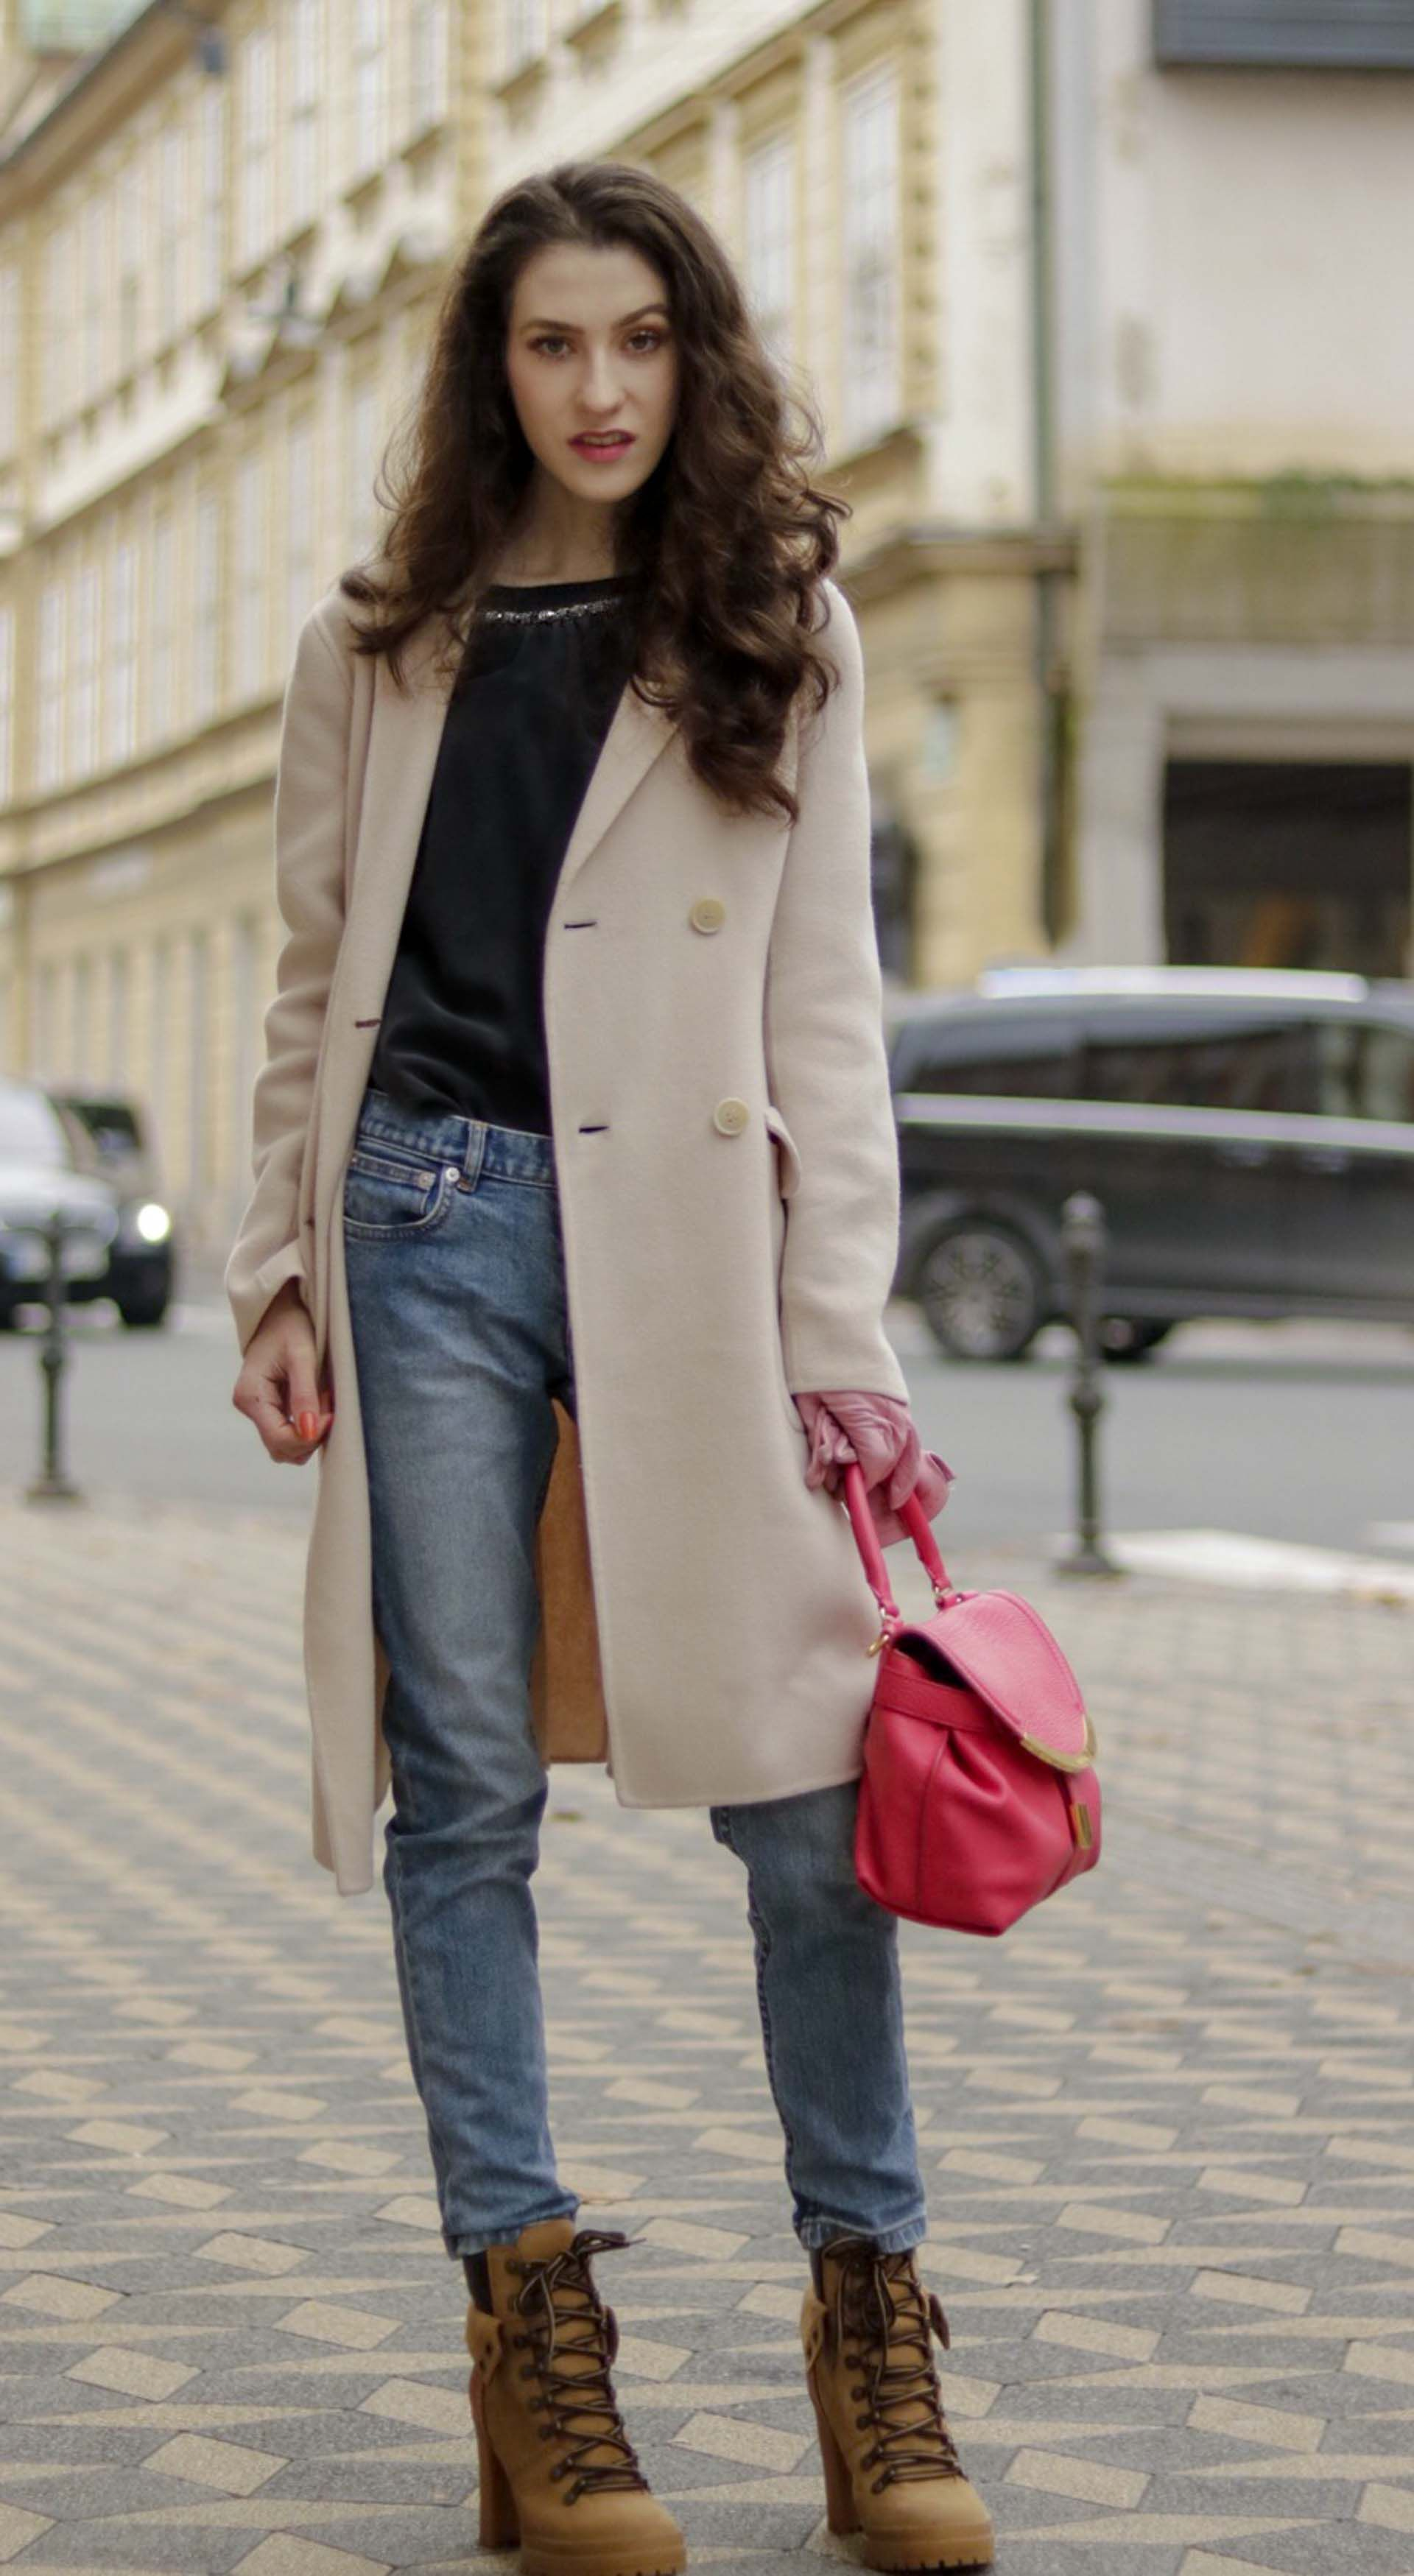 024686dc132 Must follow Slovenian Fashion Blogger Veronika Lipar of Brunette from Wall  Street dressed in See By Chloé ankle boots